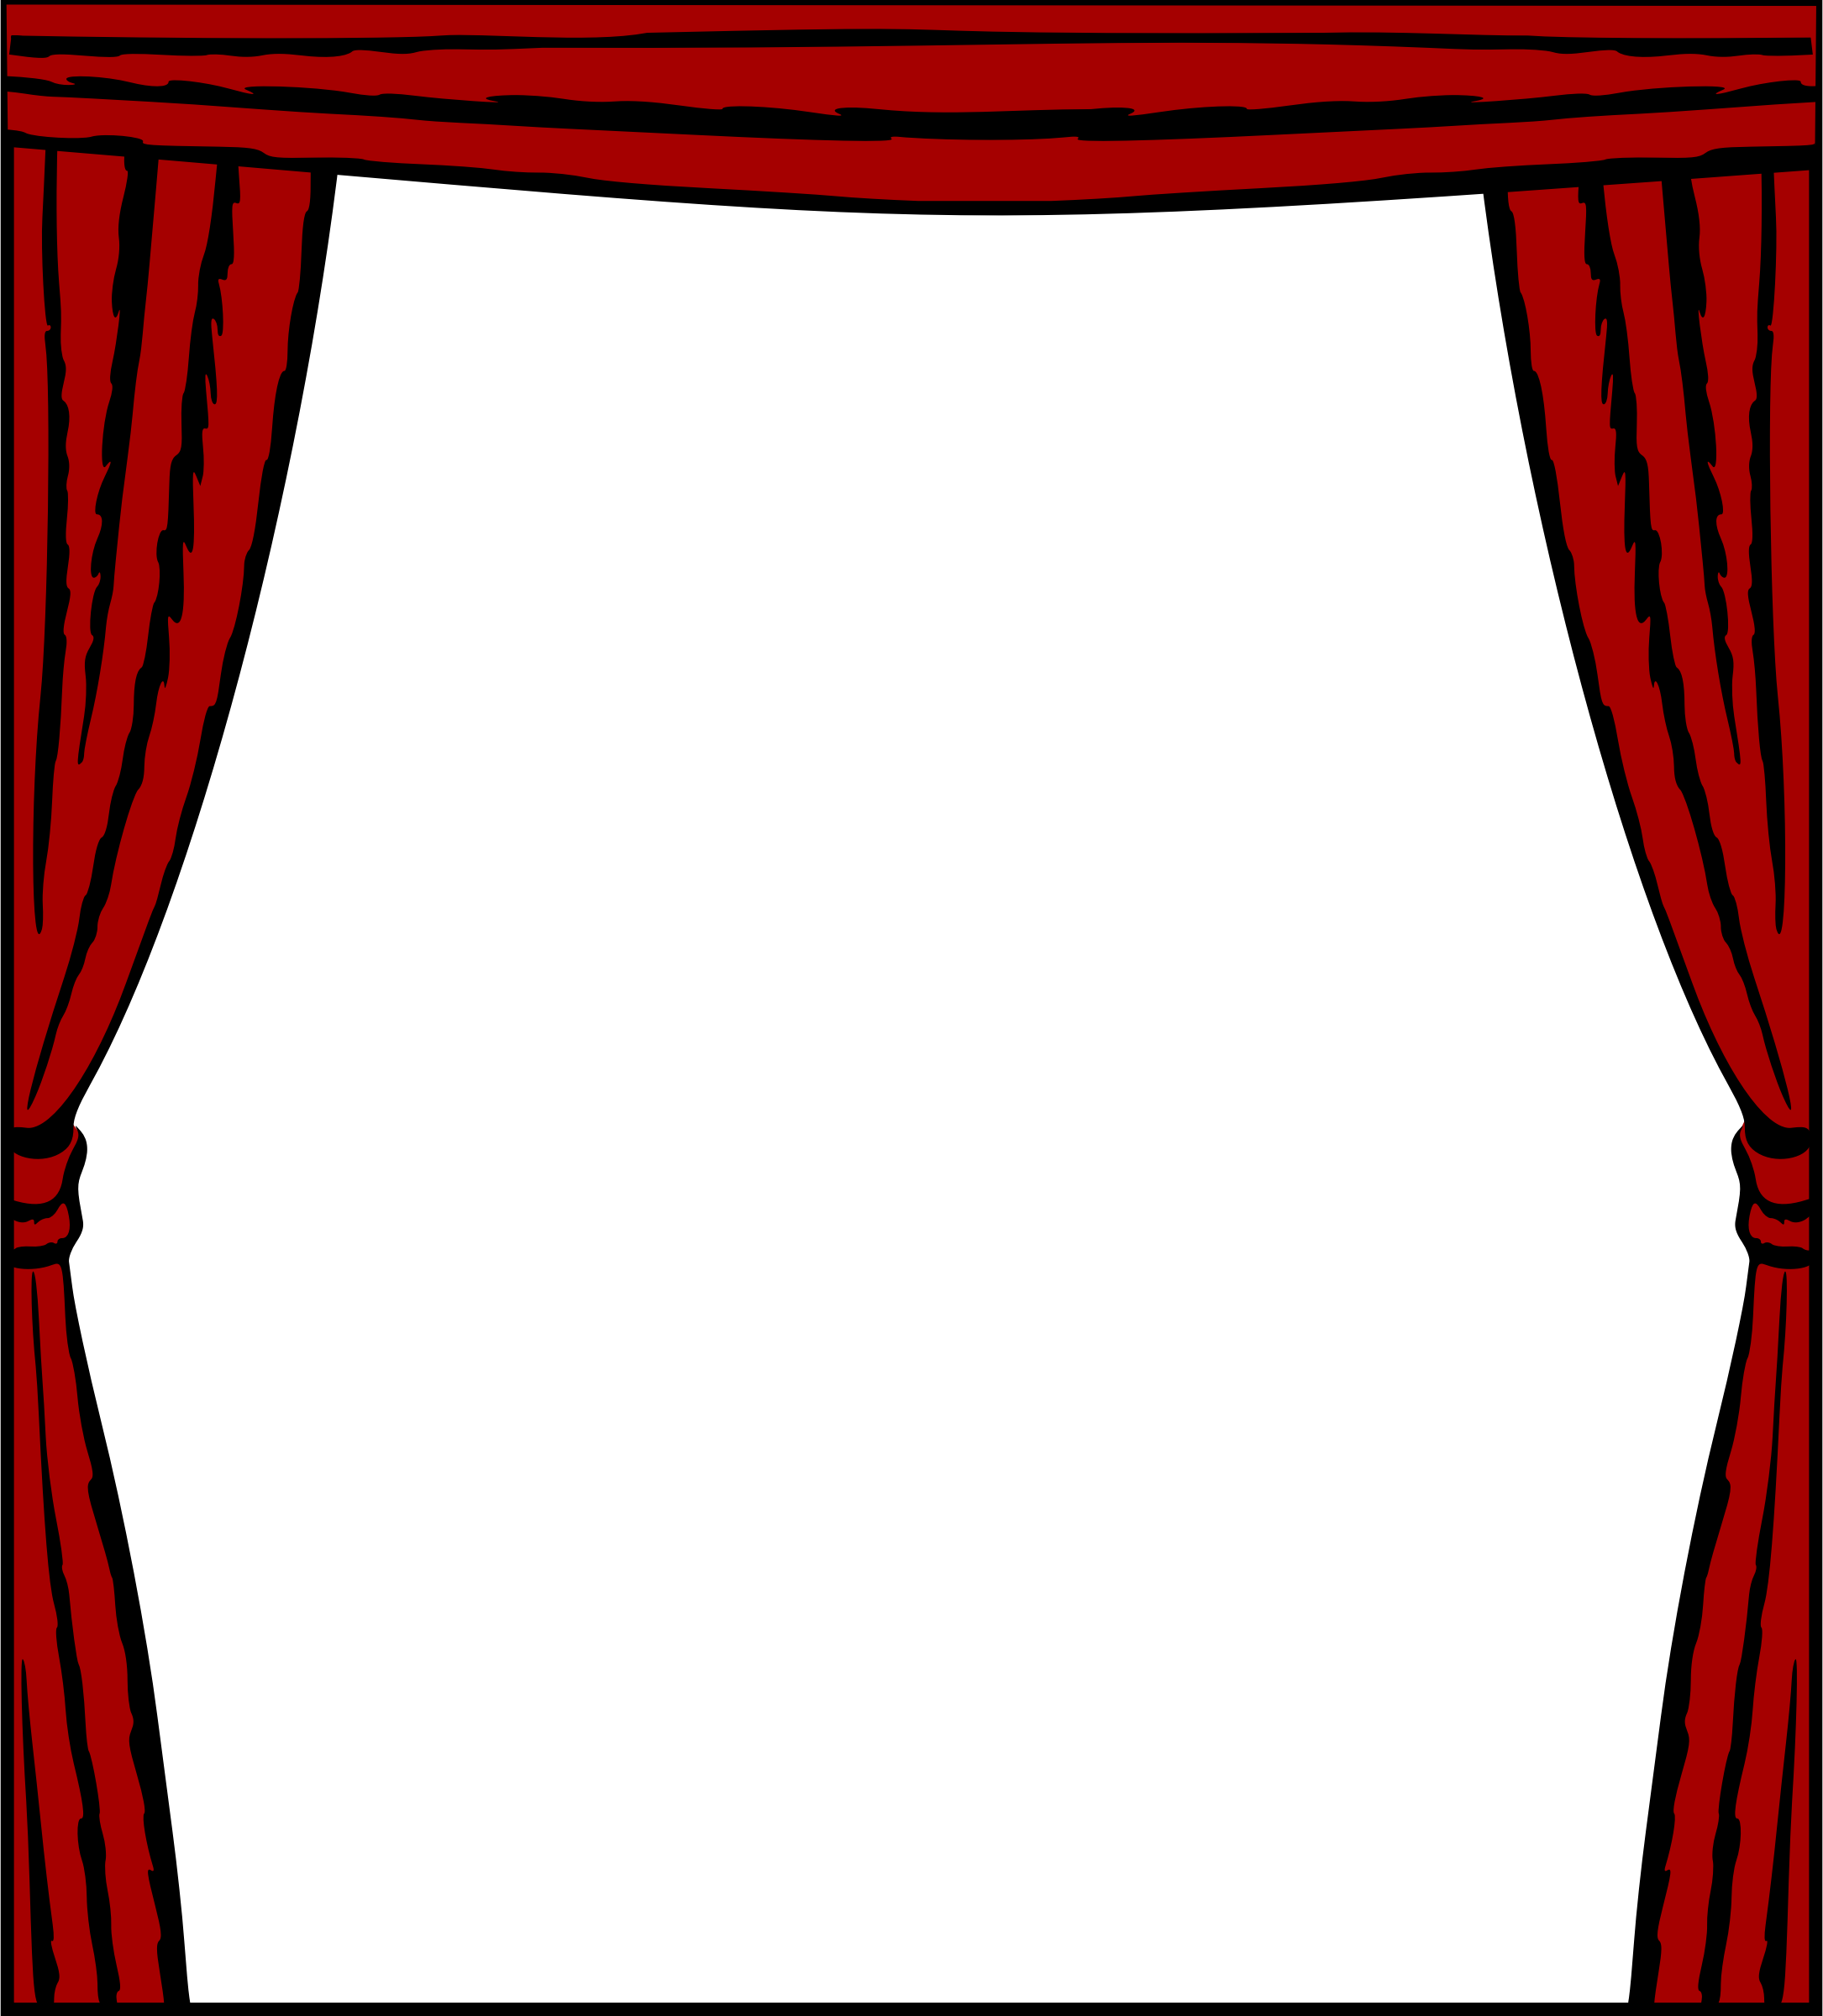 Stage transparent photo frame. Curtain icons png free